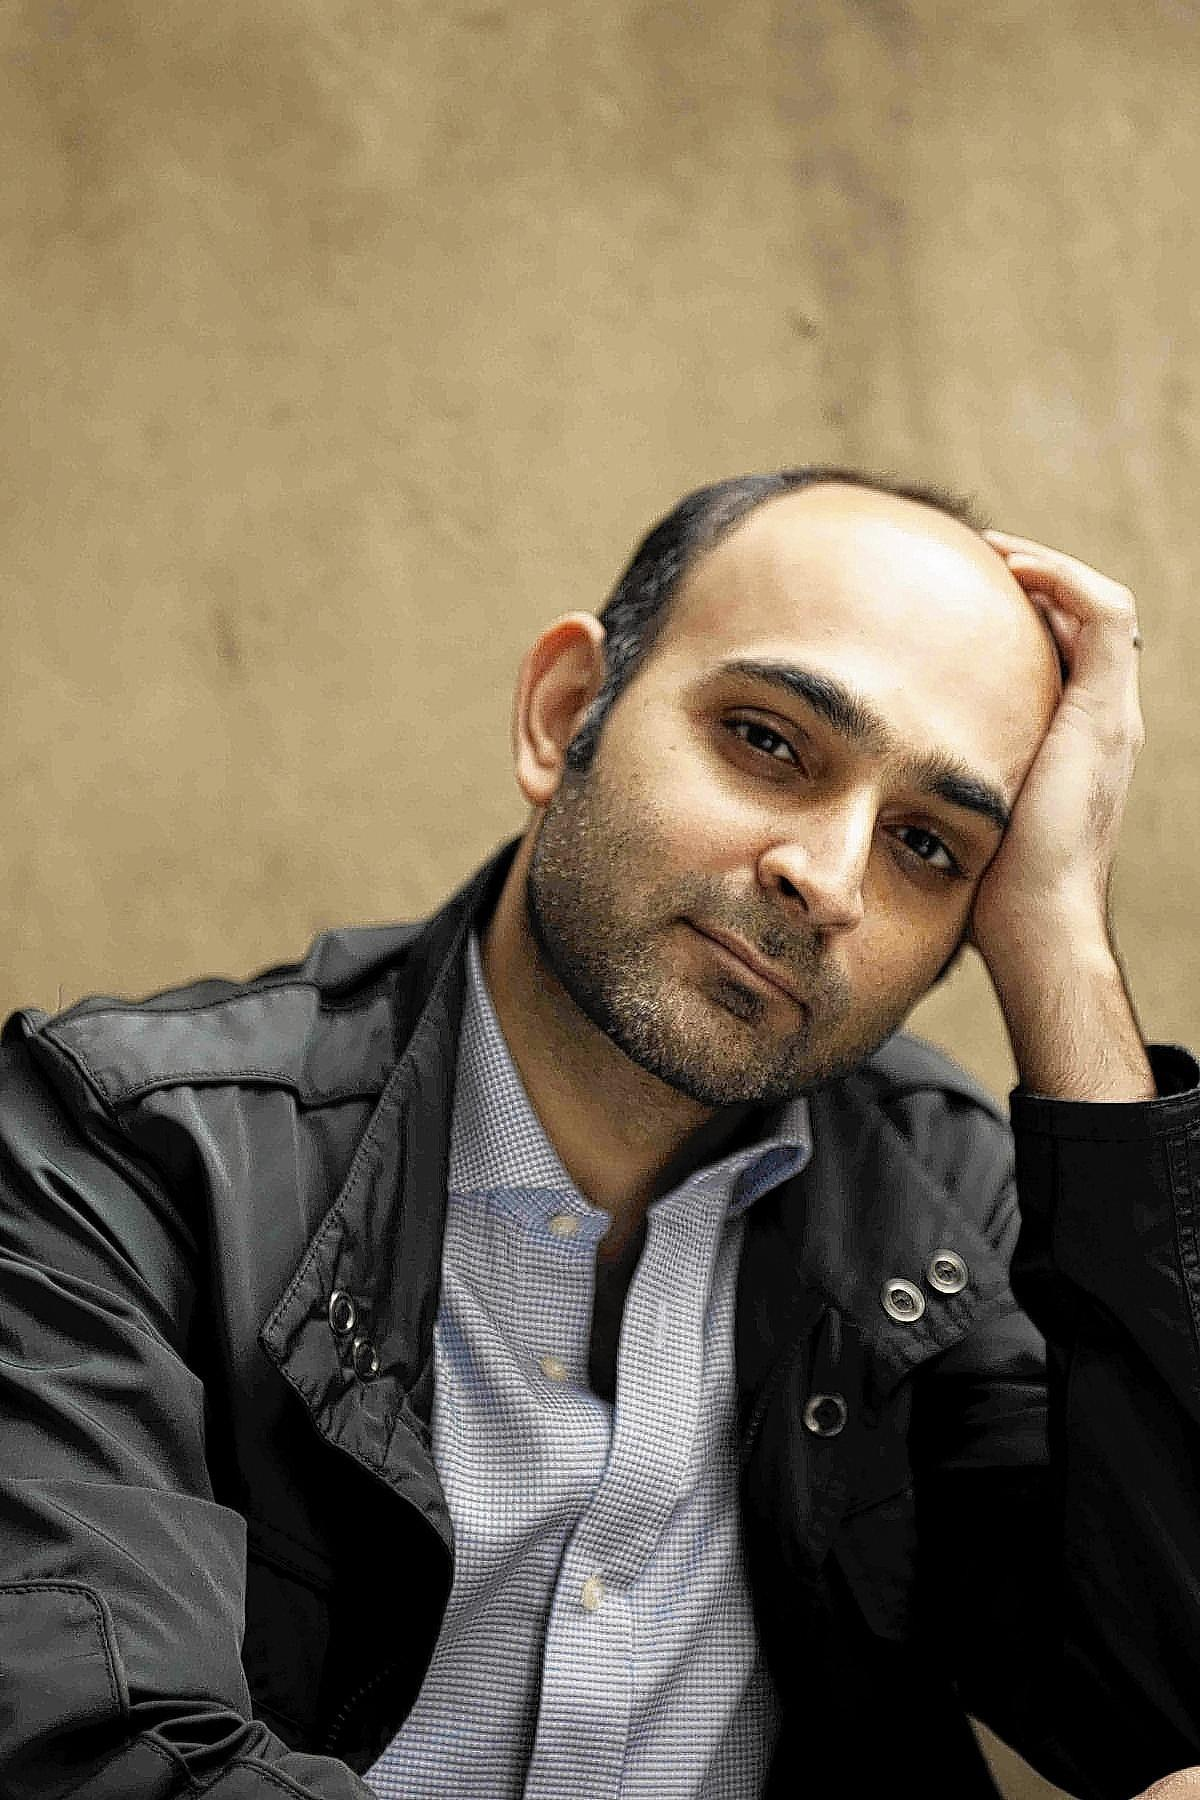 Pakistani-born author Mohsin Hamid